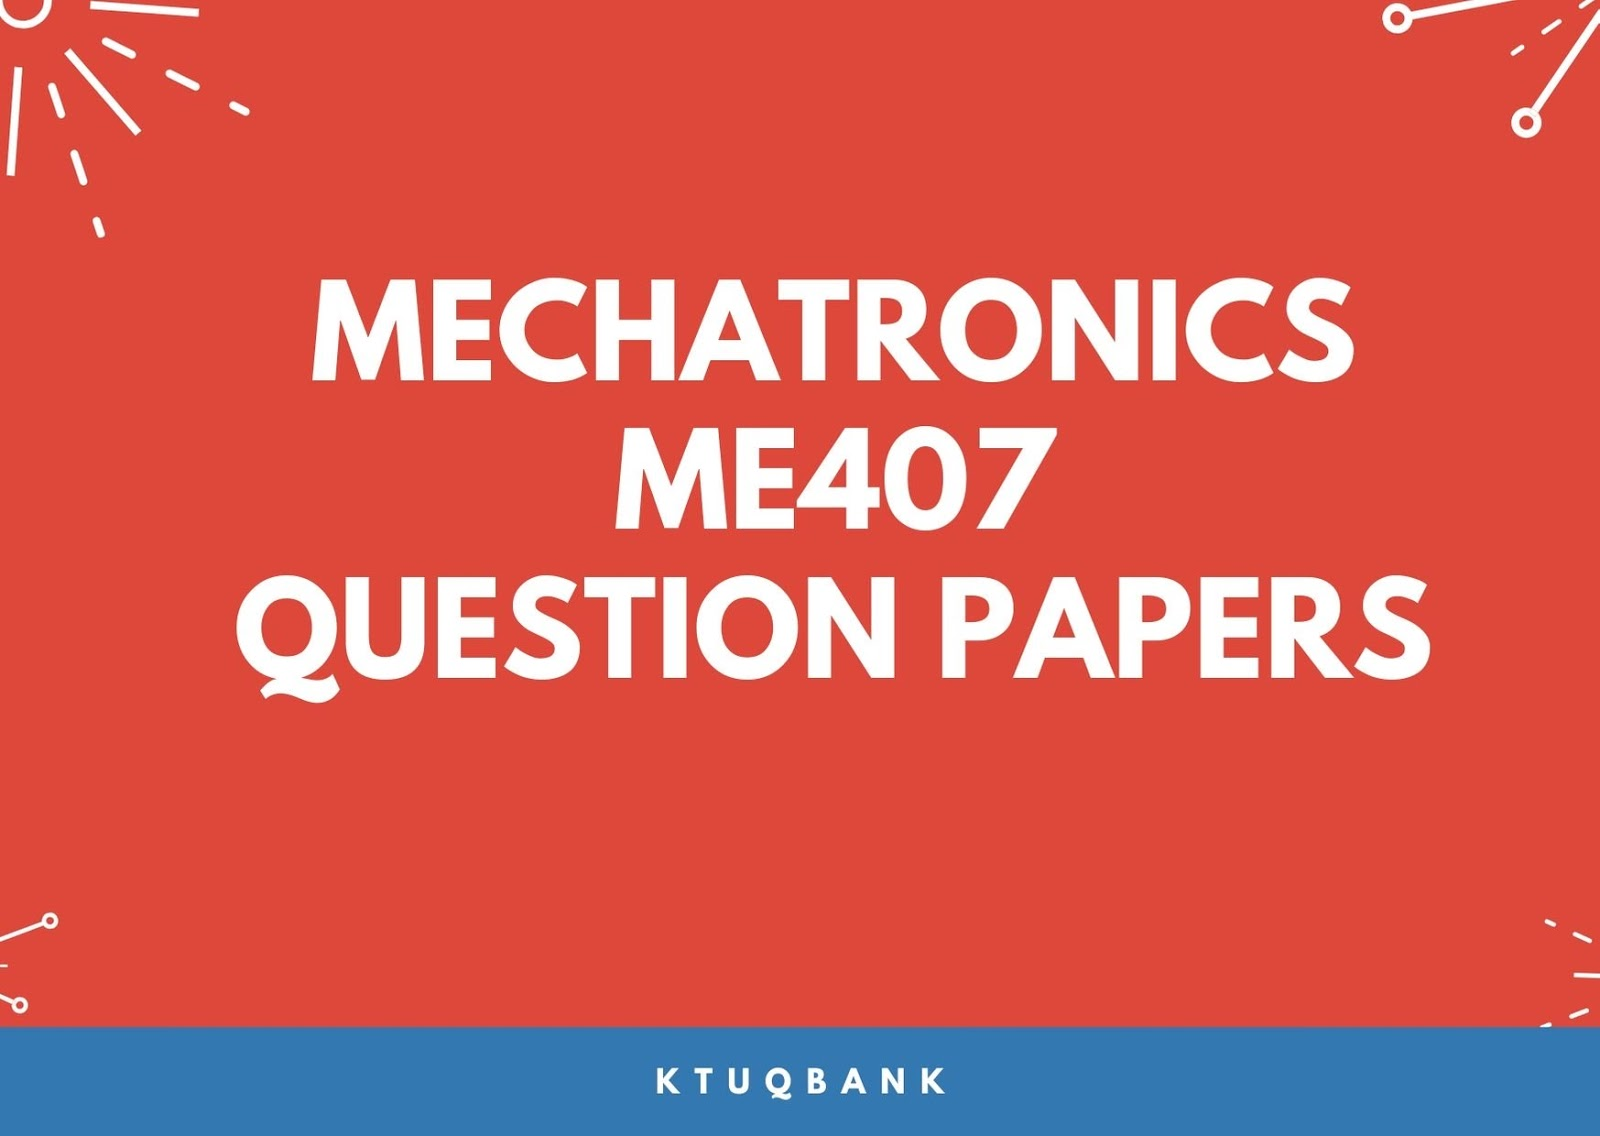 Mechatronics | ME407 | Question Papers (2015 batch)